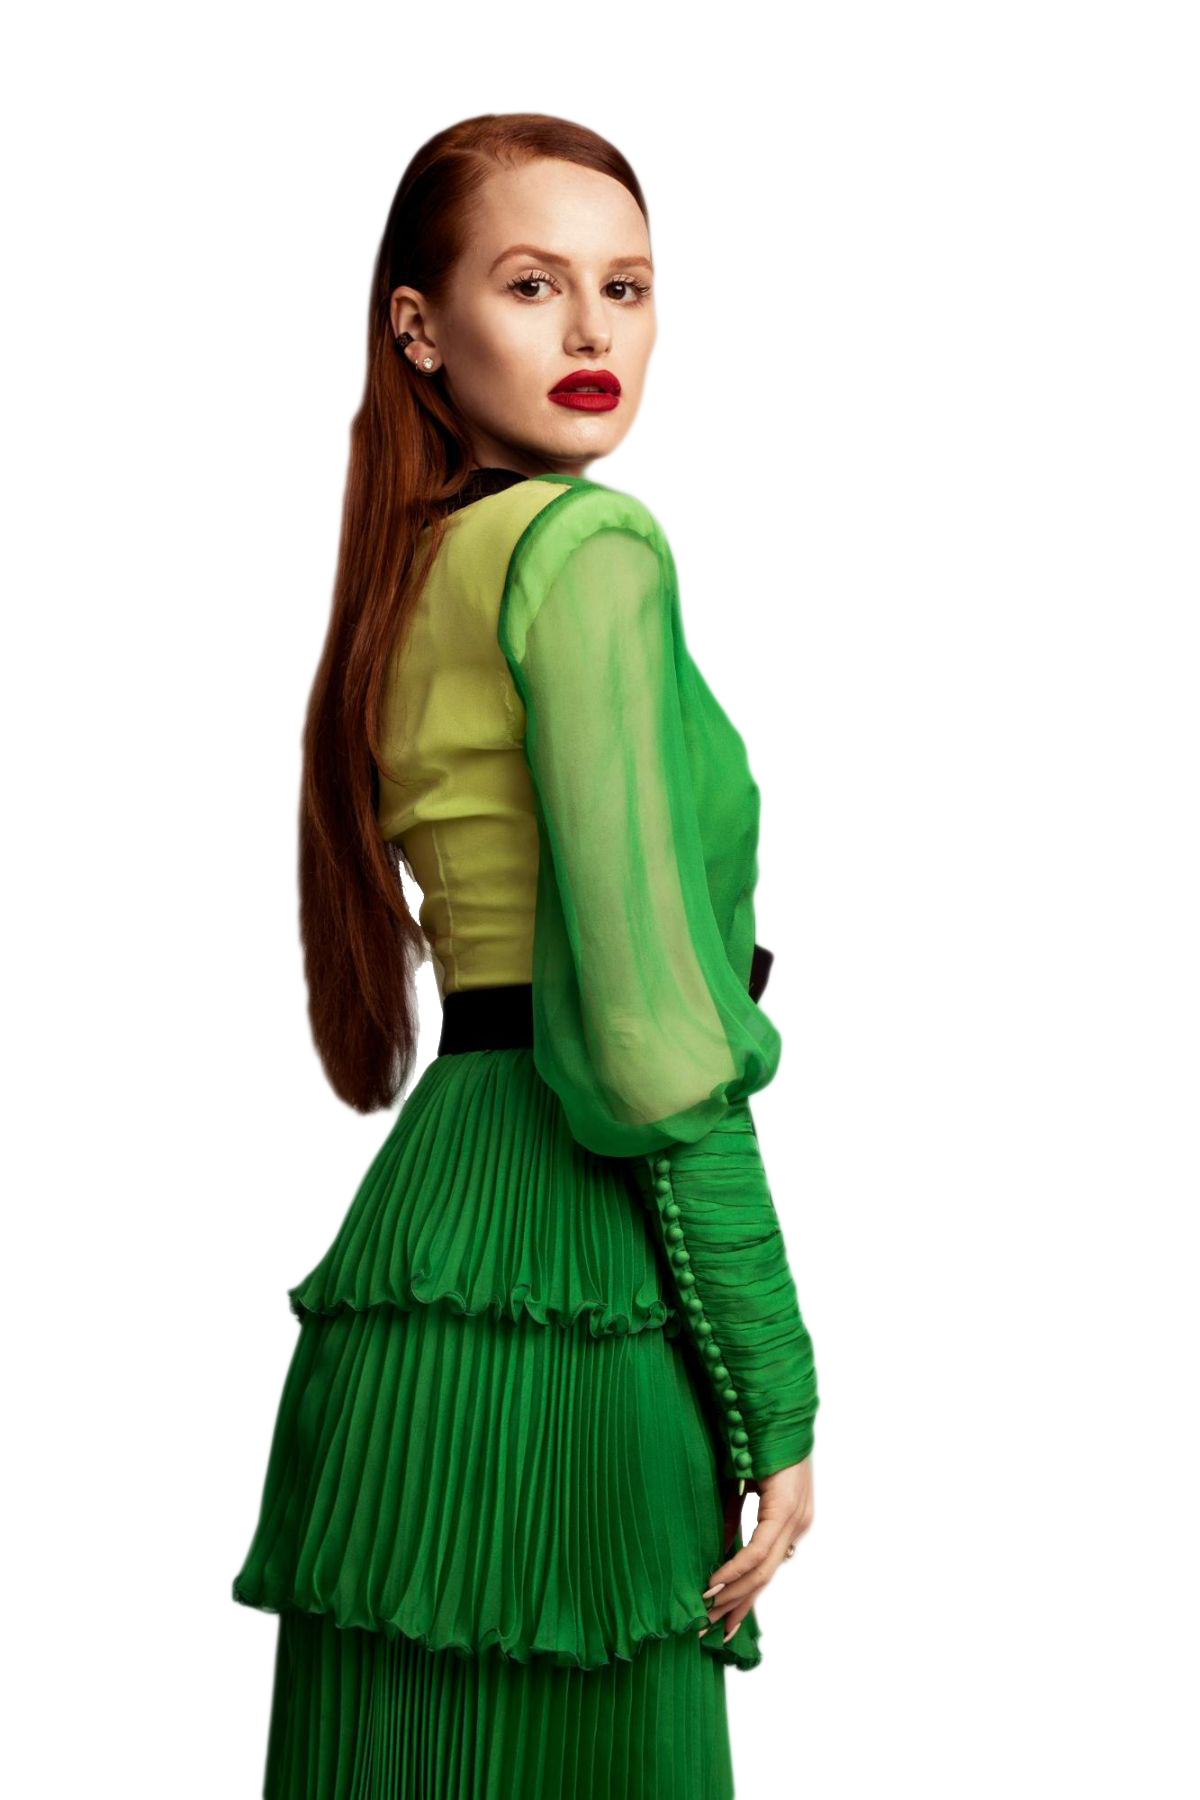 Madelaine Petsch PNG Image.